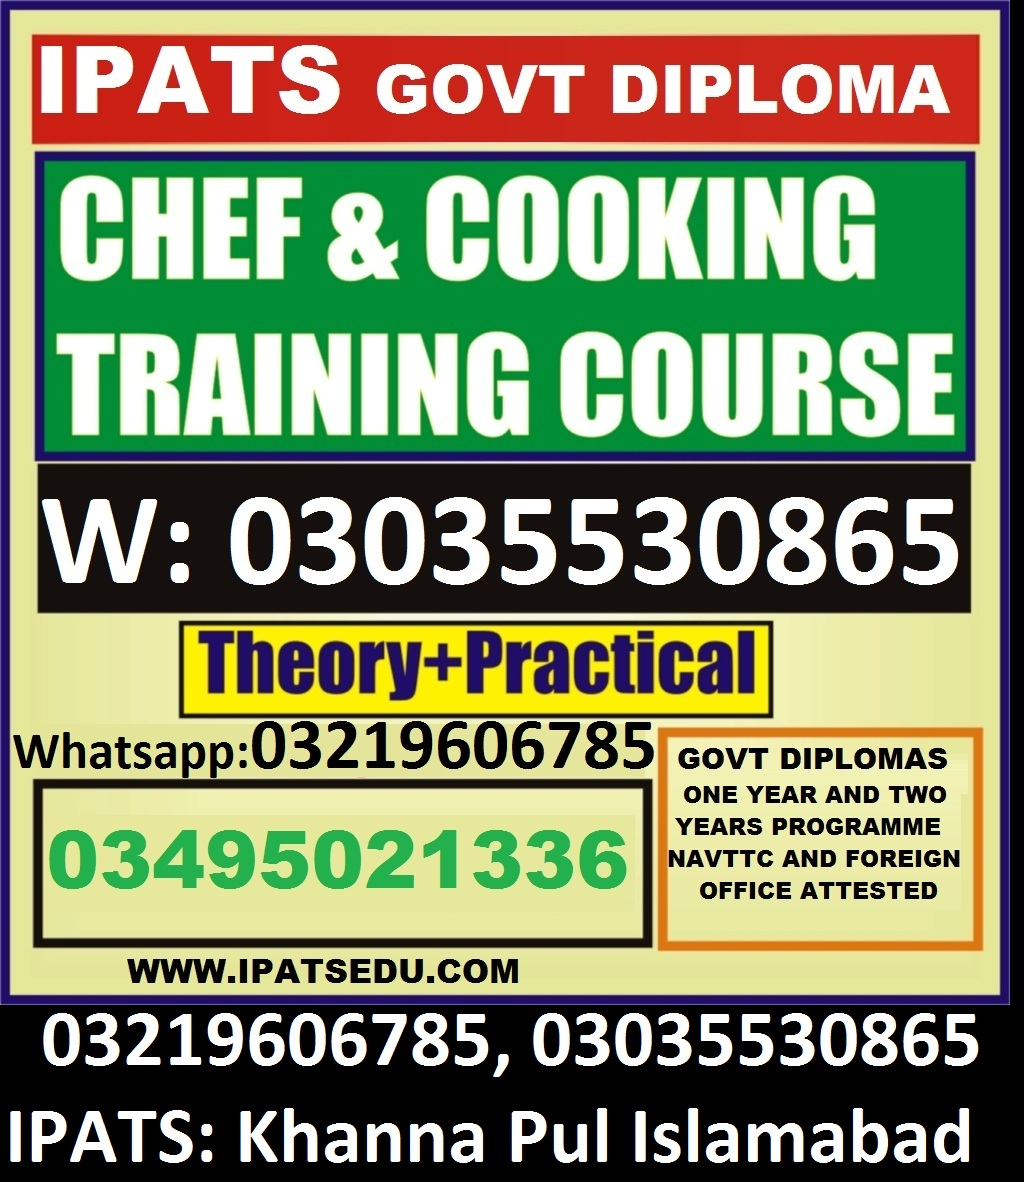 Chef & Cooking Professional Practical Course in Bag 303-5530865